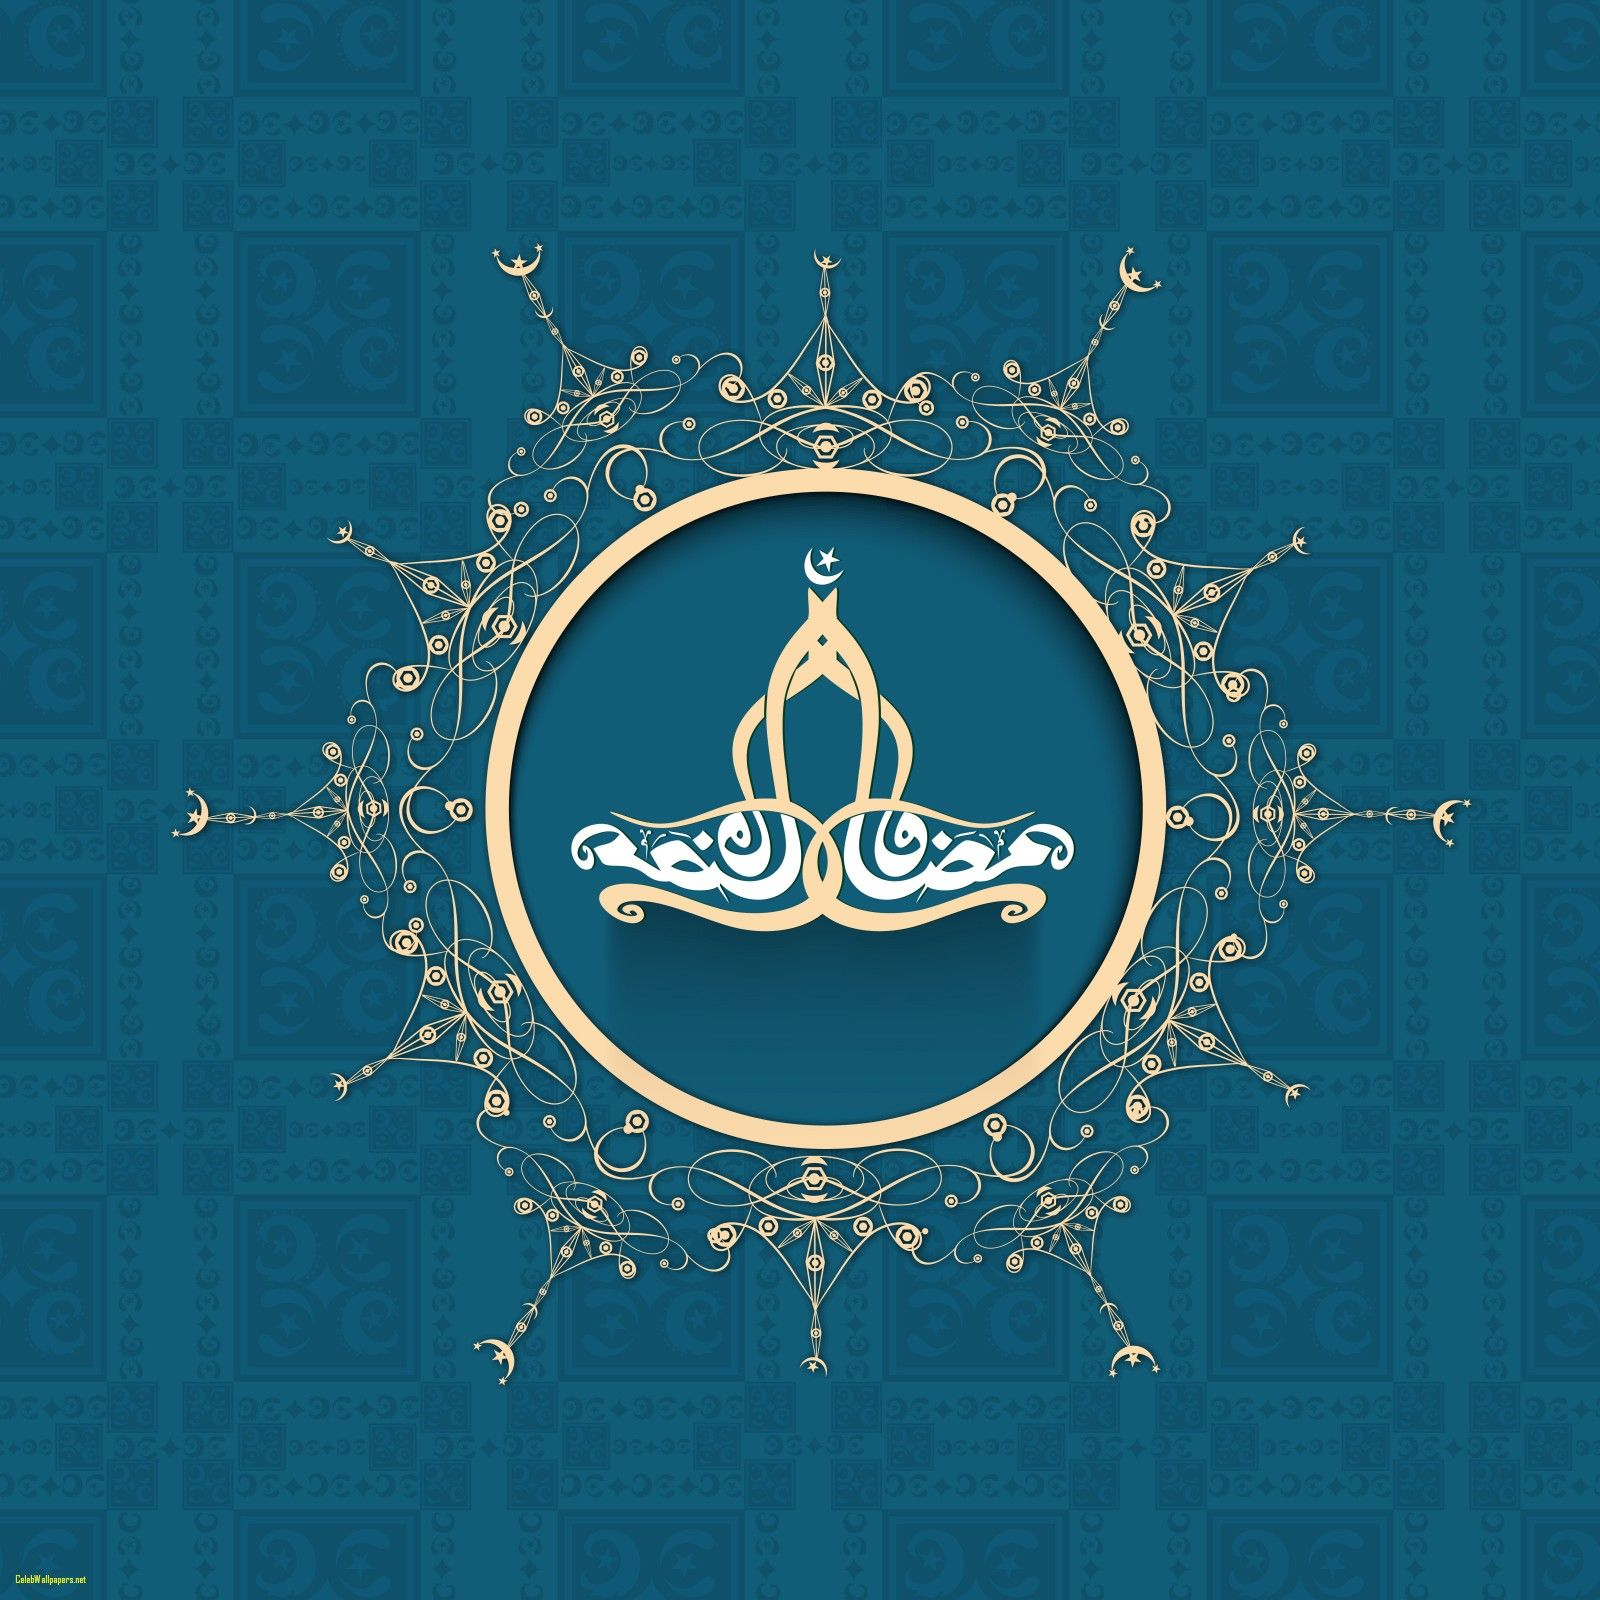 1600x1600 Islamic Wallpapers Religious Hq islamic Pictures Islamic Images ...